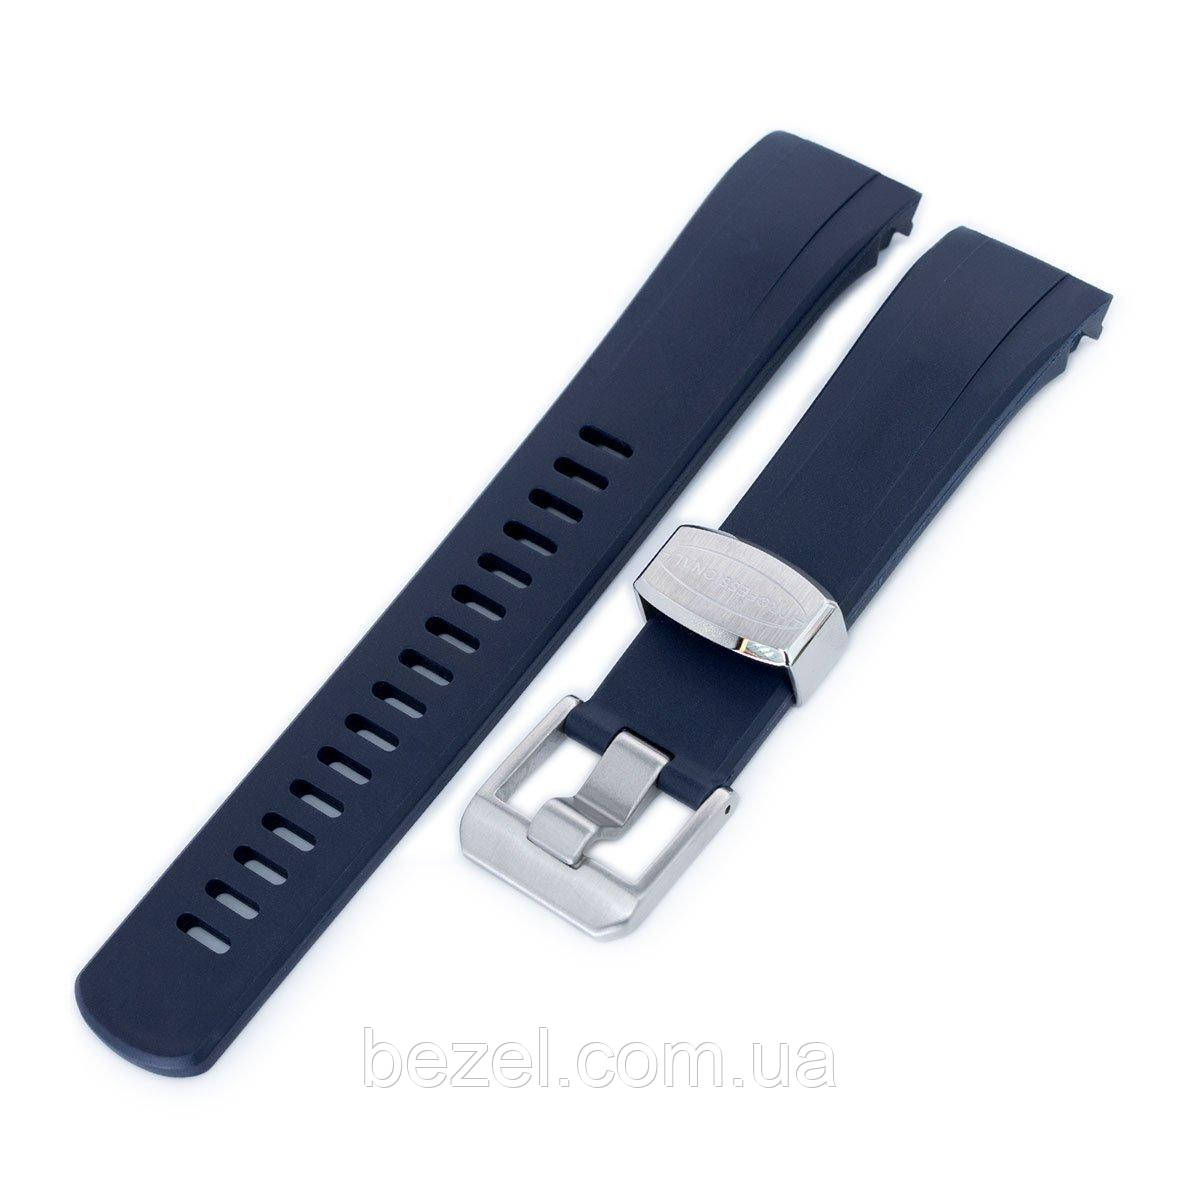 22mm Crafter Blue - Dark Blue Rubber Curved Lug Watch Strap for Seiko Samurai SRPB51